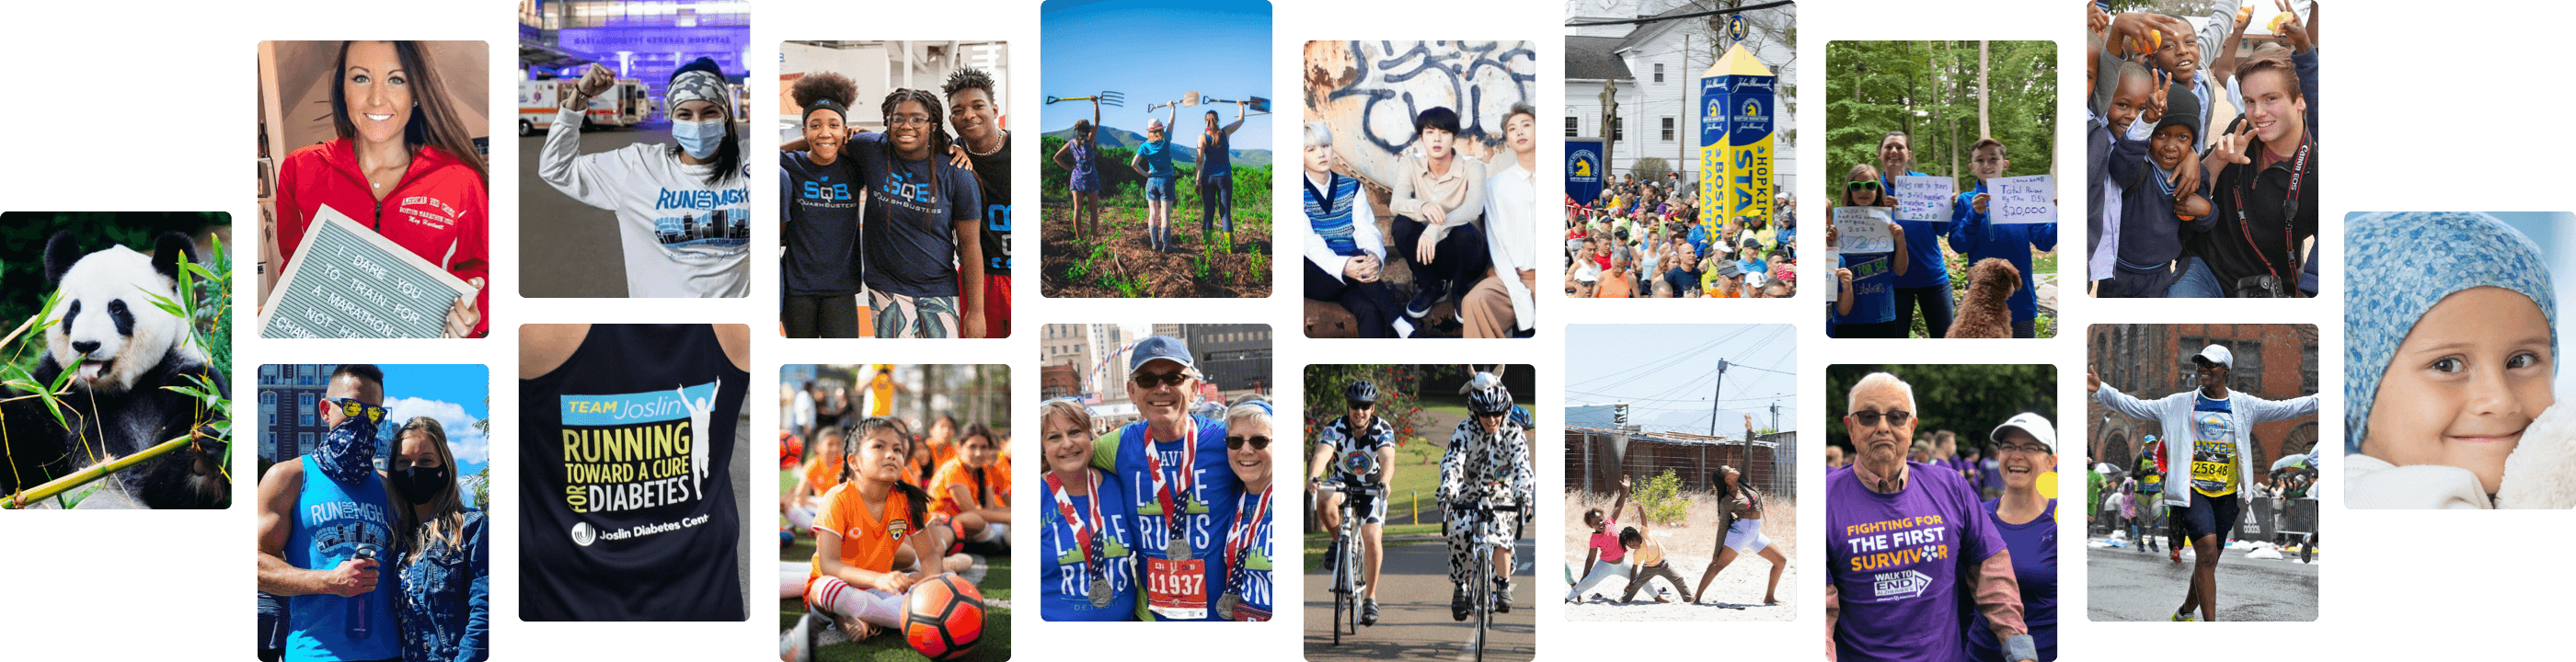 A collage of different fundraiser and charity images. Examples include people running marathons for charity